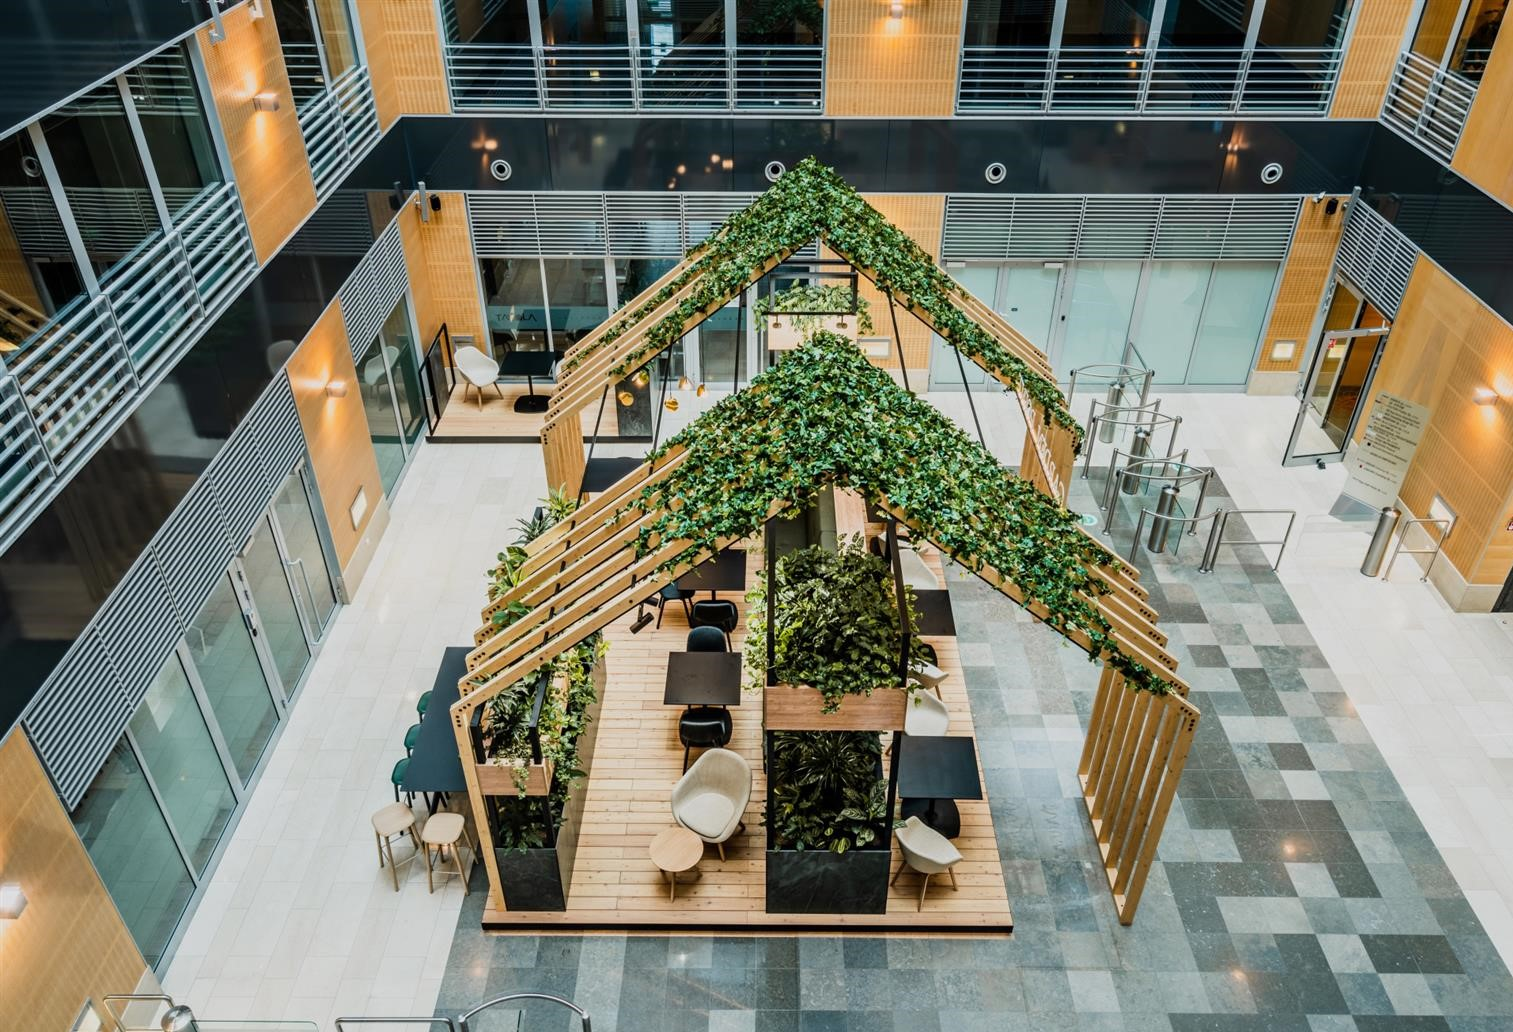 A welcoming oasis for Bluehouse Capital at Marynarska Point 2 in Warsaw, Poland